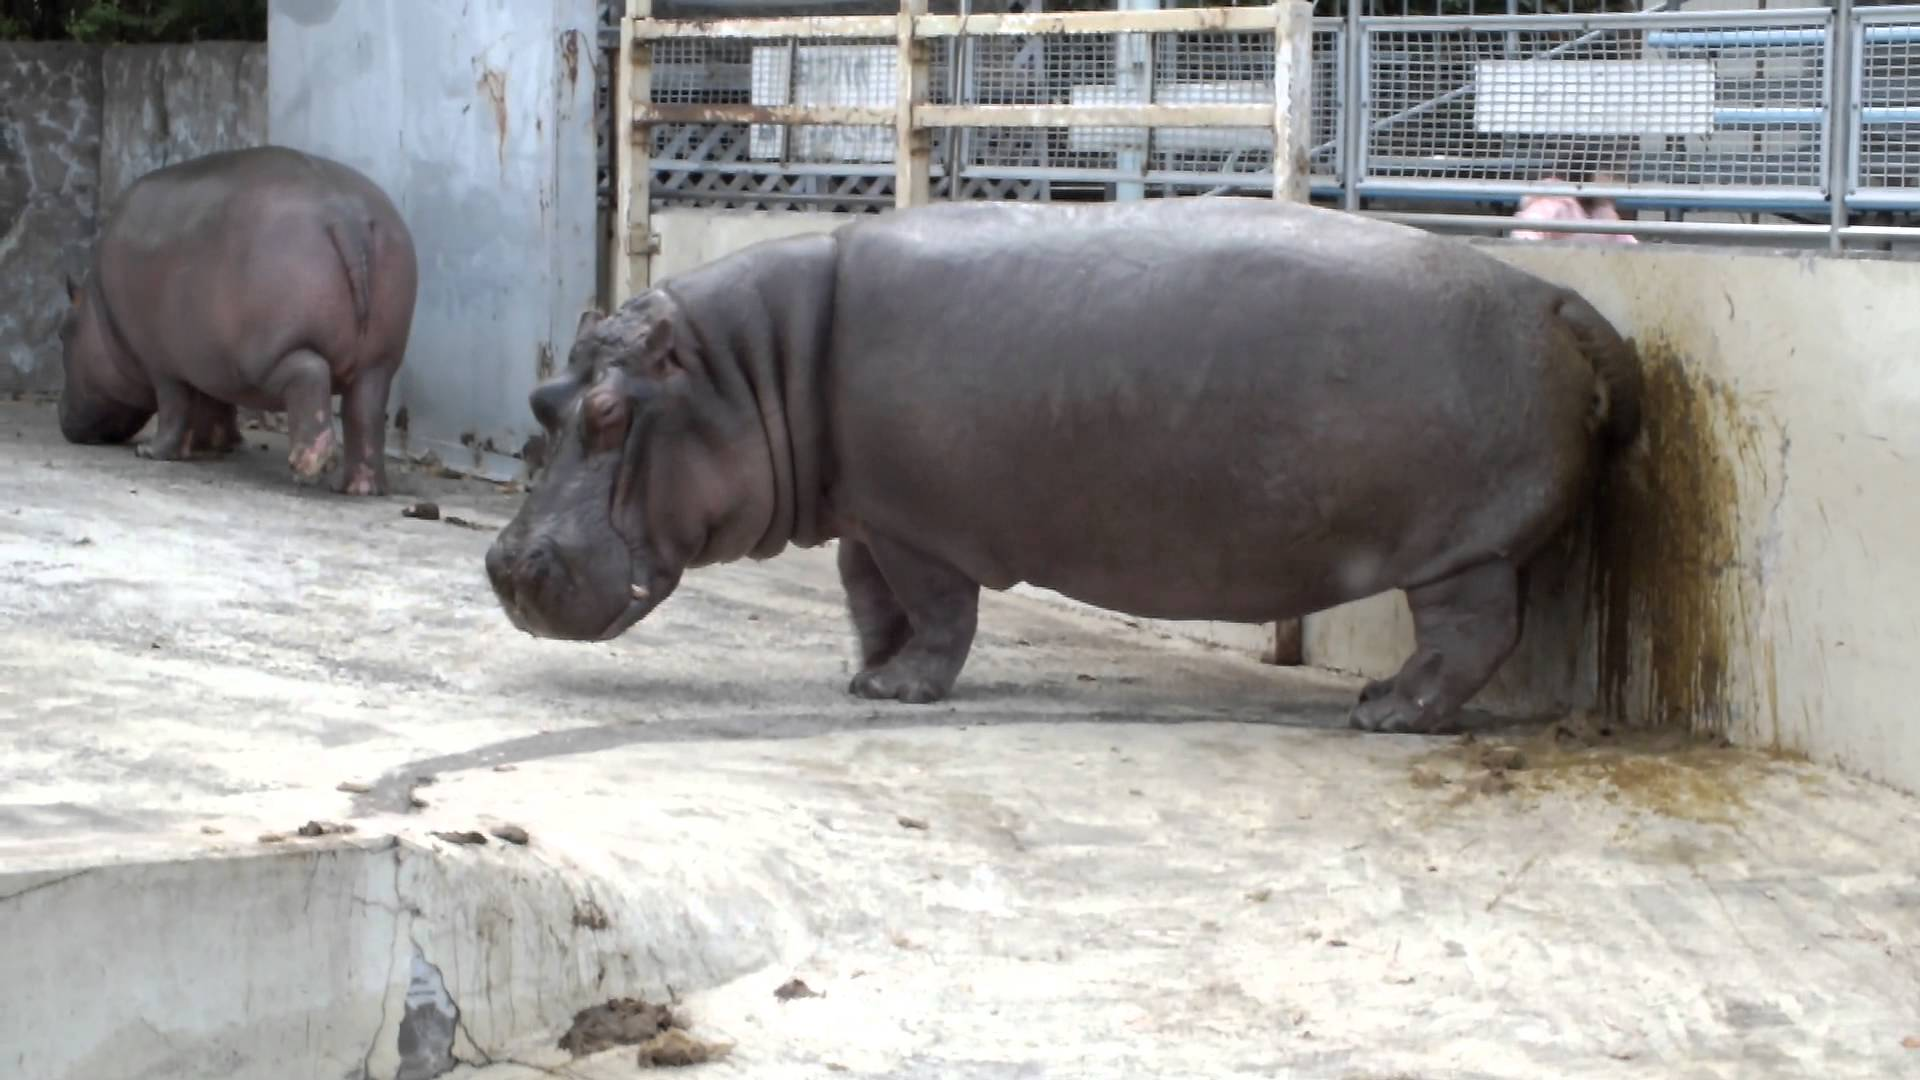 Hippo blasting the wall with shit (Too much Metamucil)